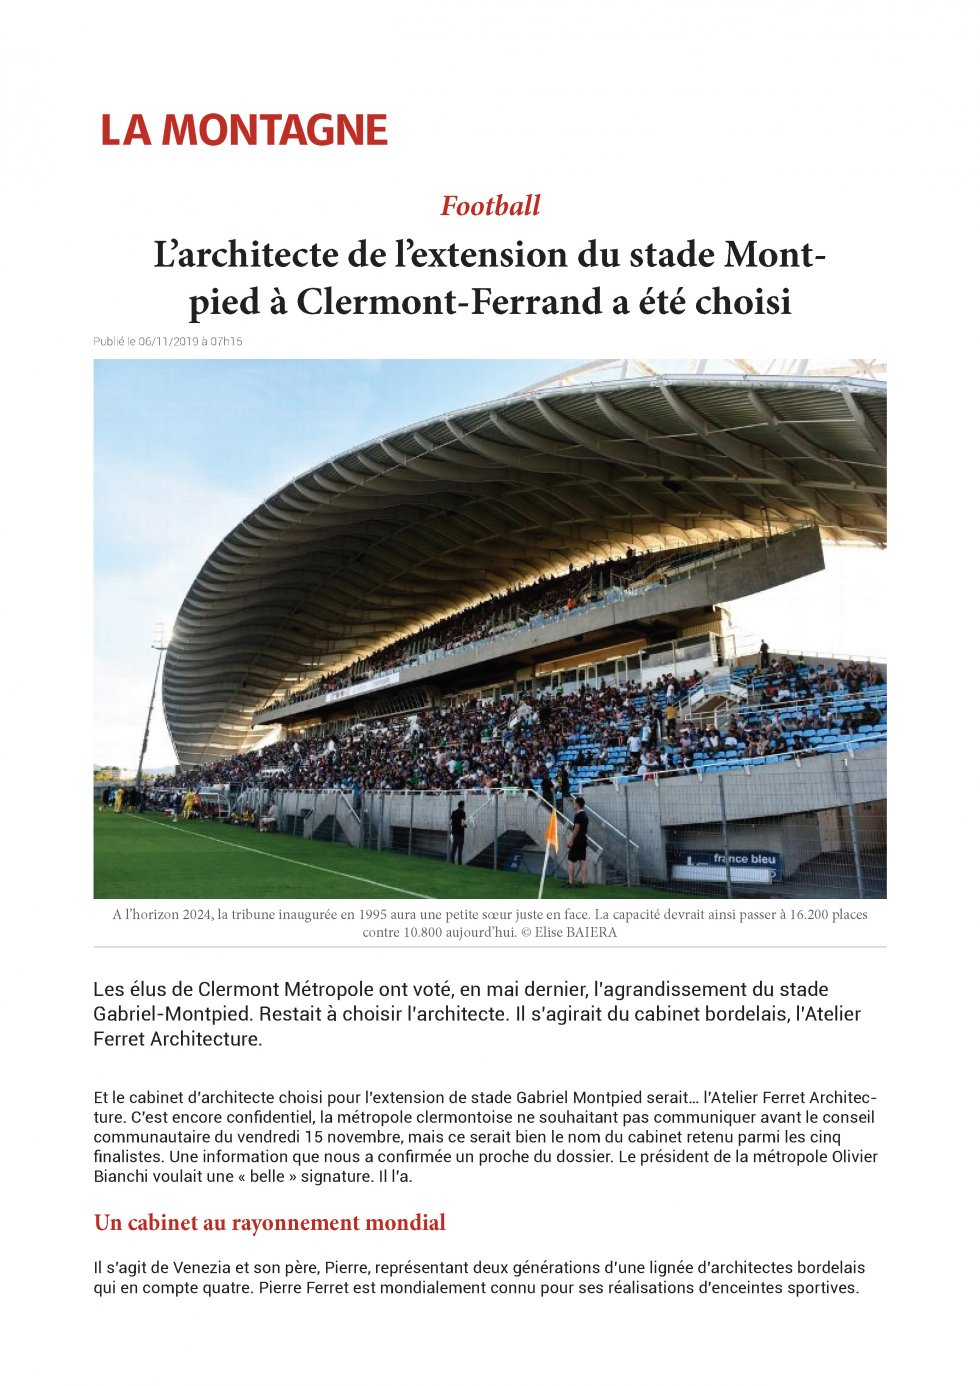 The architect of the extension of the Montpied stadium in Clermont-Ferrand has been chosen